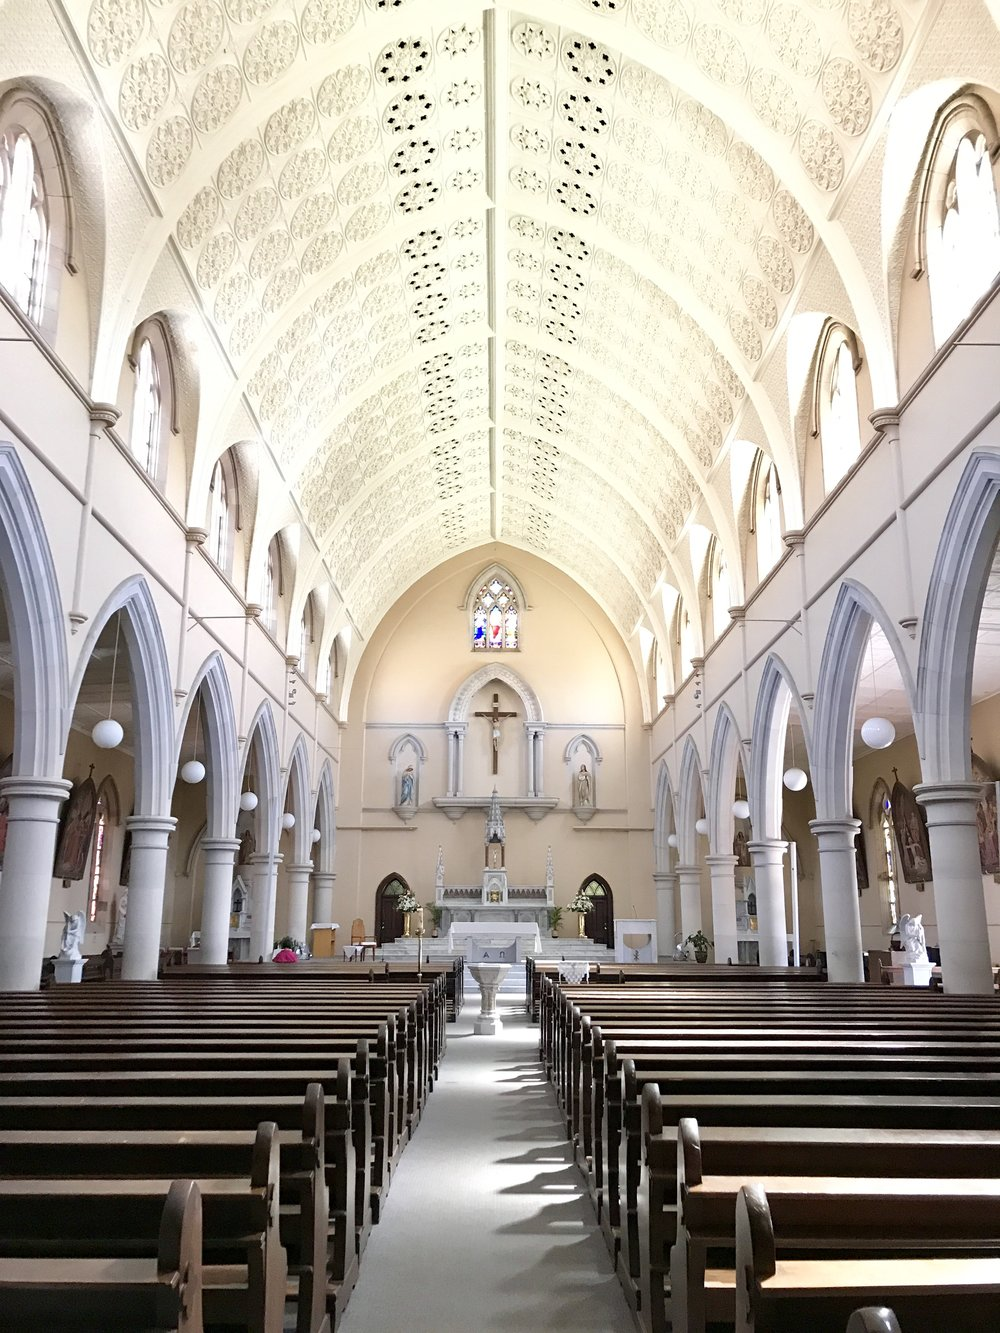 Inside the majestic St Mary's.